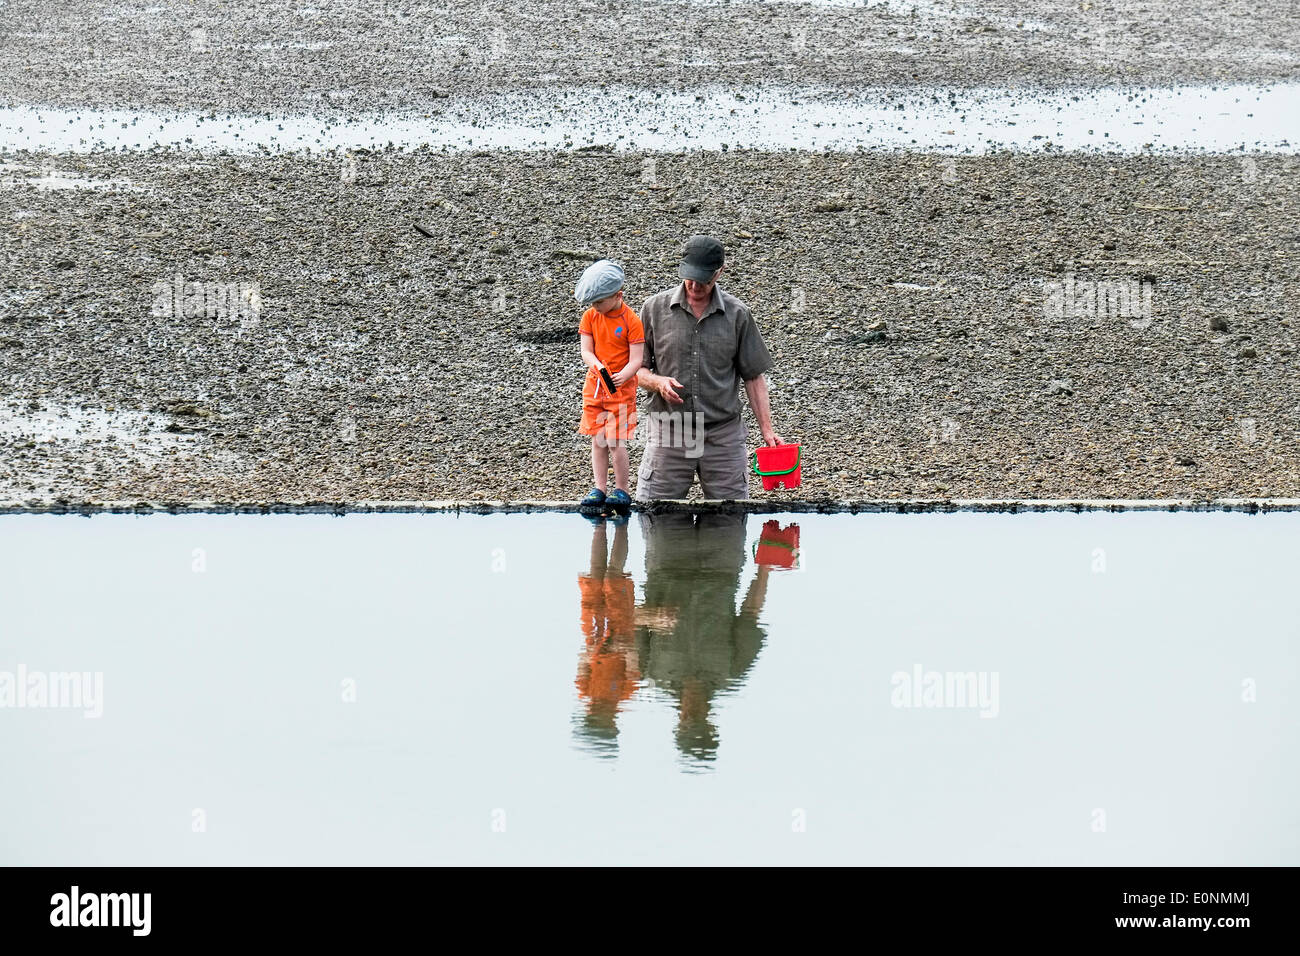 Southen on Sea, Essex. 17th May, 2014.  A young boy fishing for crabs with his grandfather on the beach at Southend on Sea as the temperature starts to rise on what is proving to be the hottest day of the year so far.  Photographer: Gordon Scammell/Alamy Live News - Stock Image